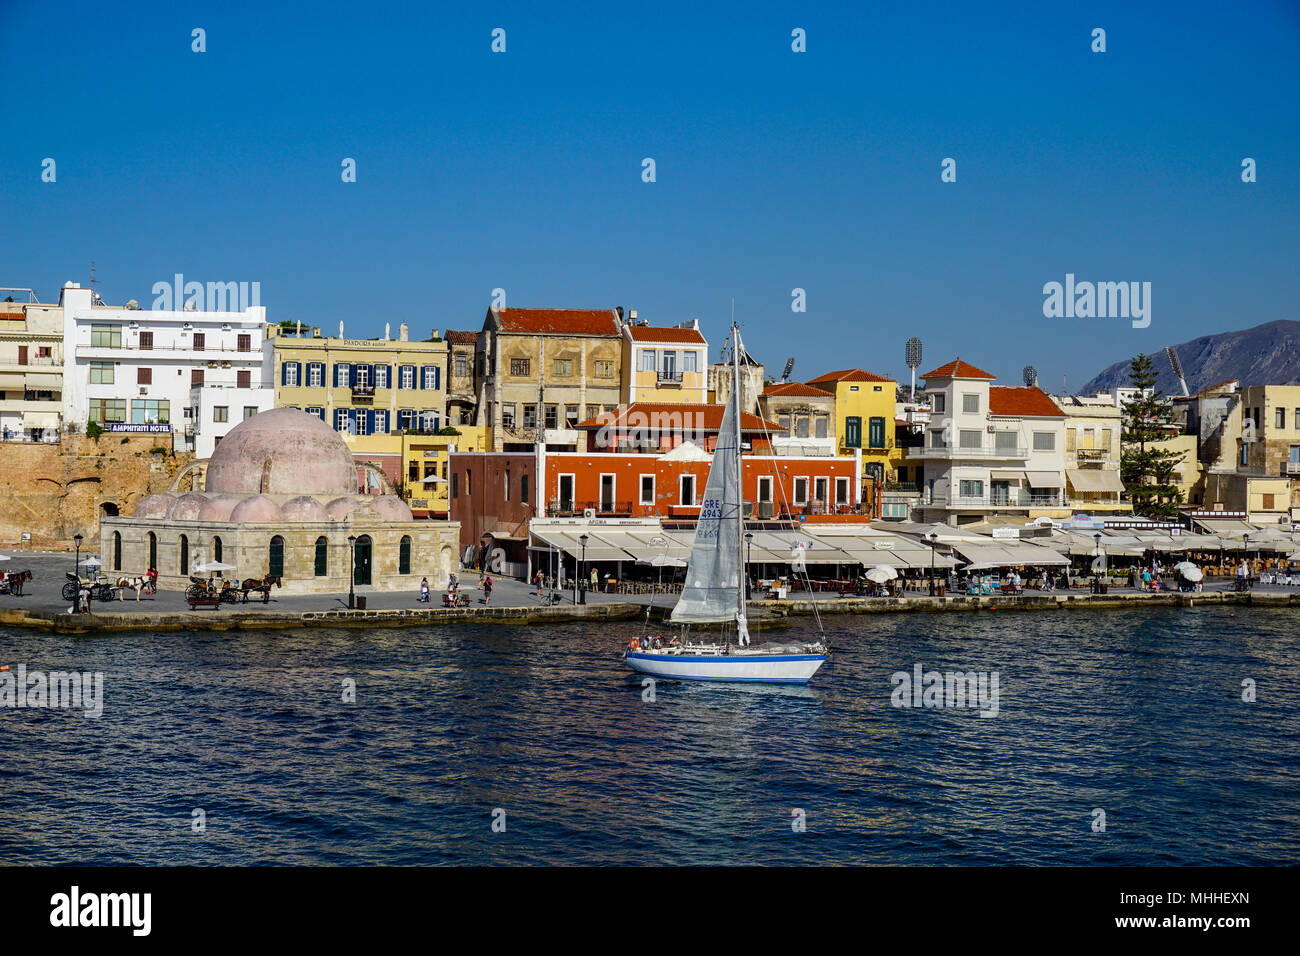 Sailboat in harbor in Chania, Crete with Mosque of Janissaries in background Stock Photo